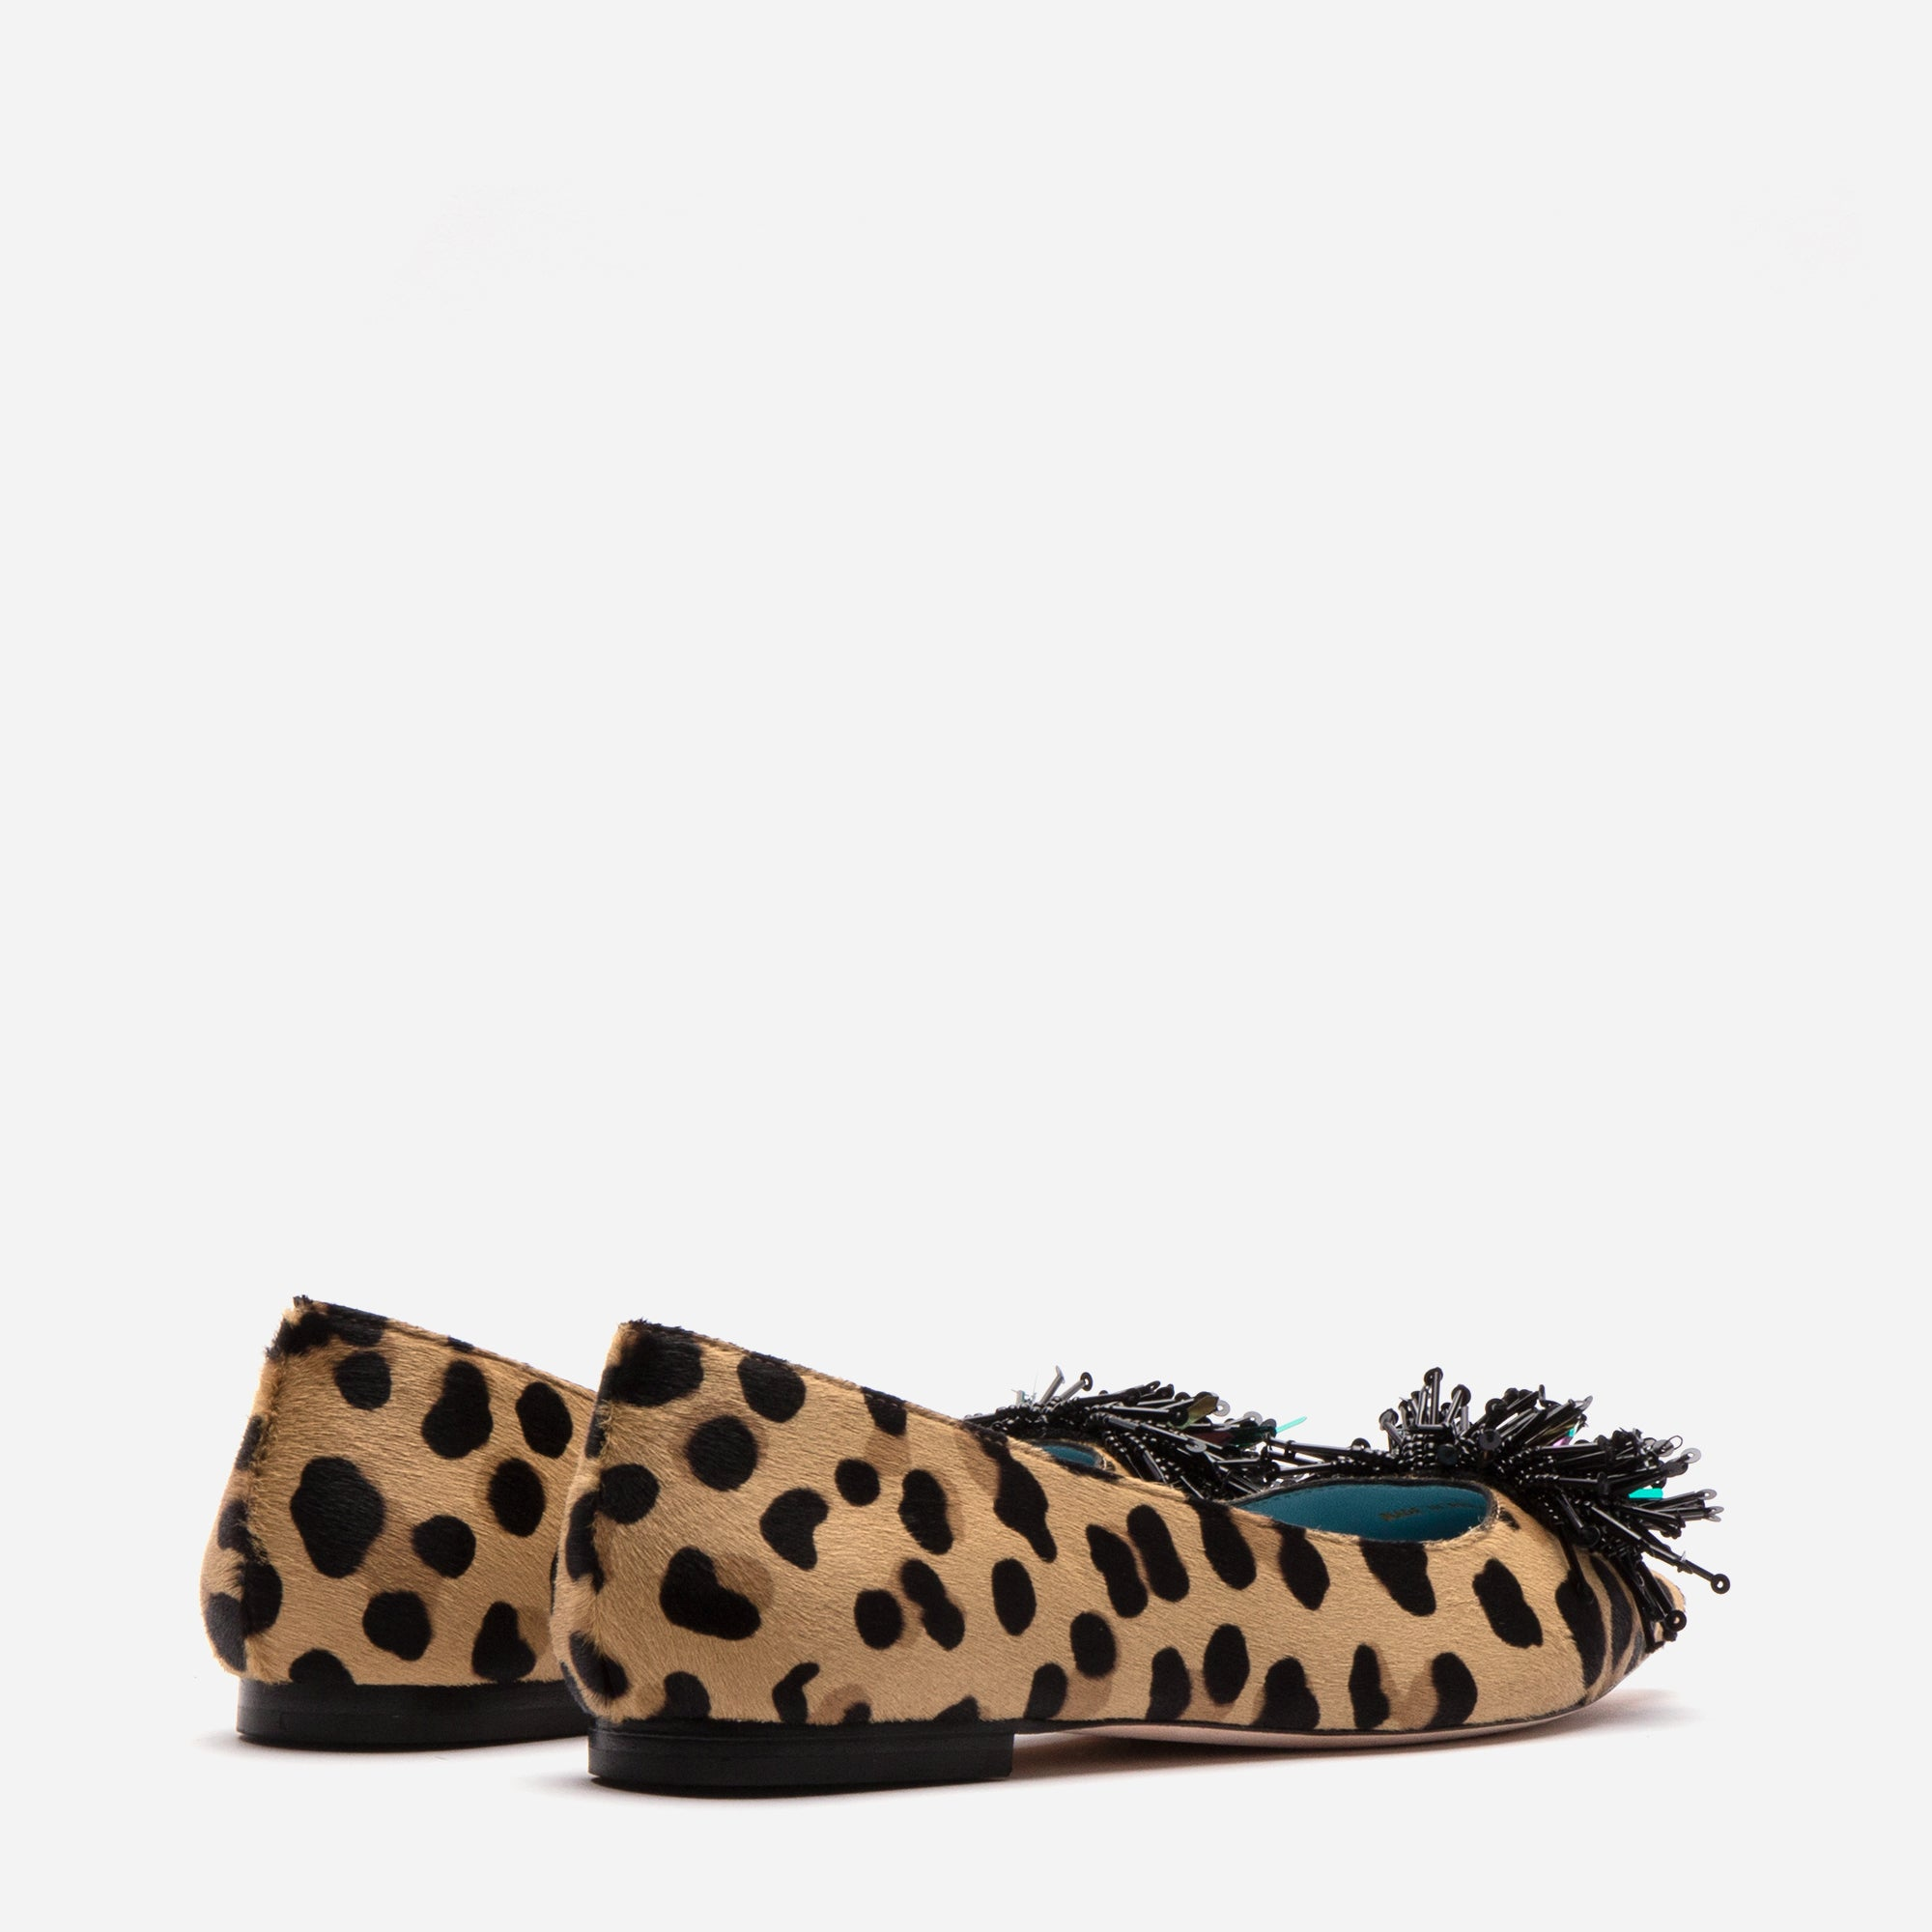 Paige Fringe Flats Leopard Printed Haircalf